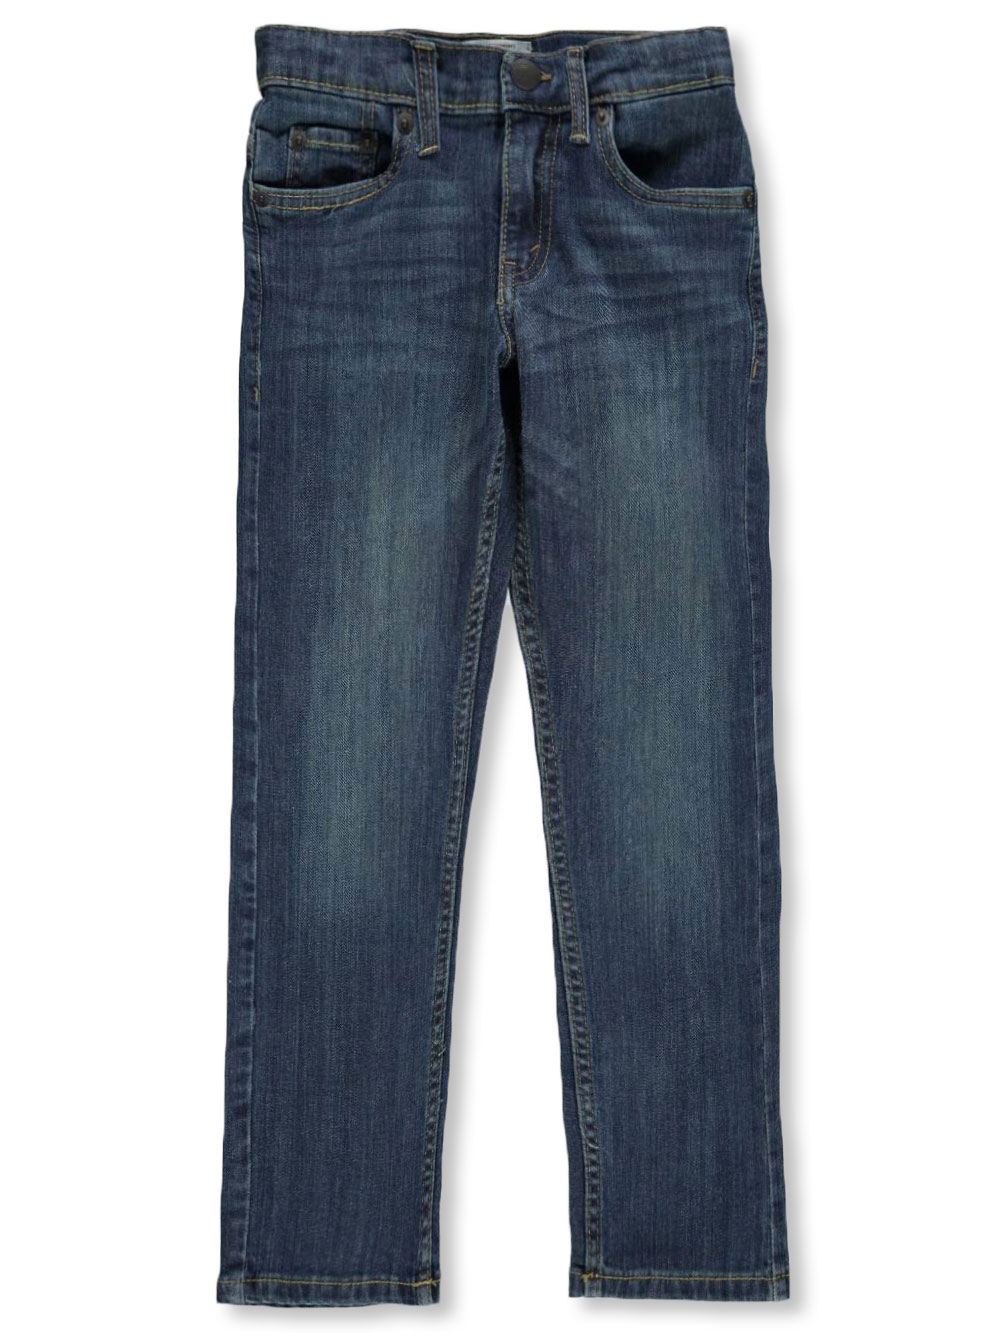 Size 3t Jeans for Boys